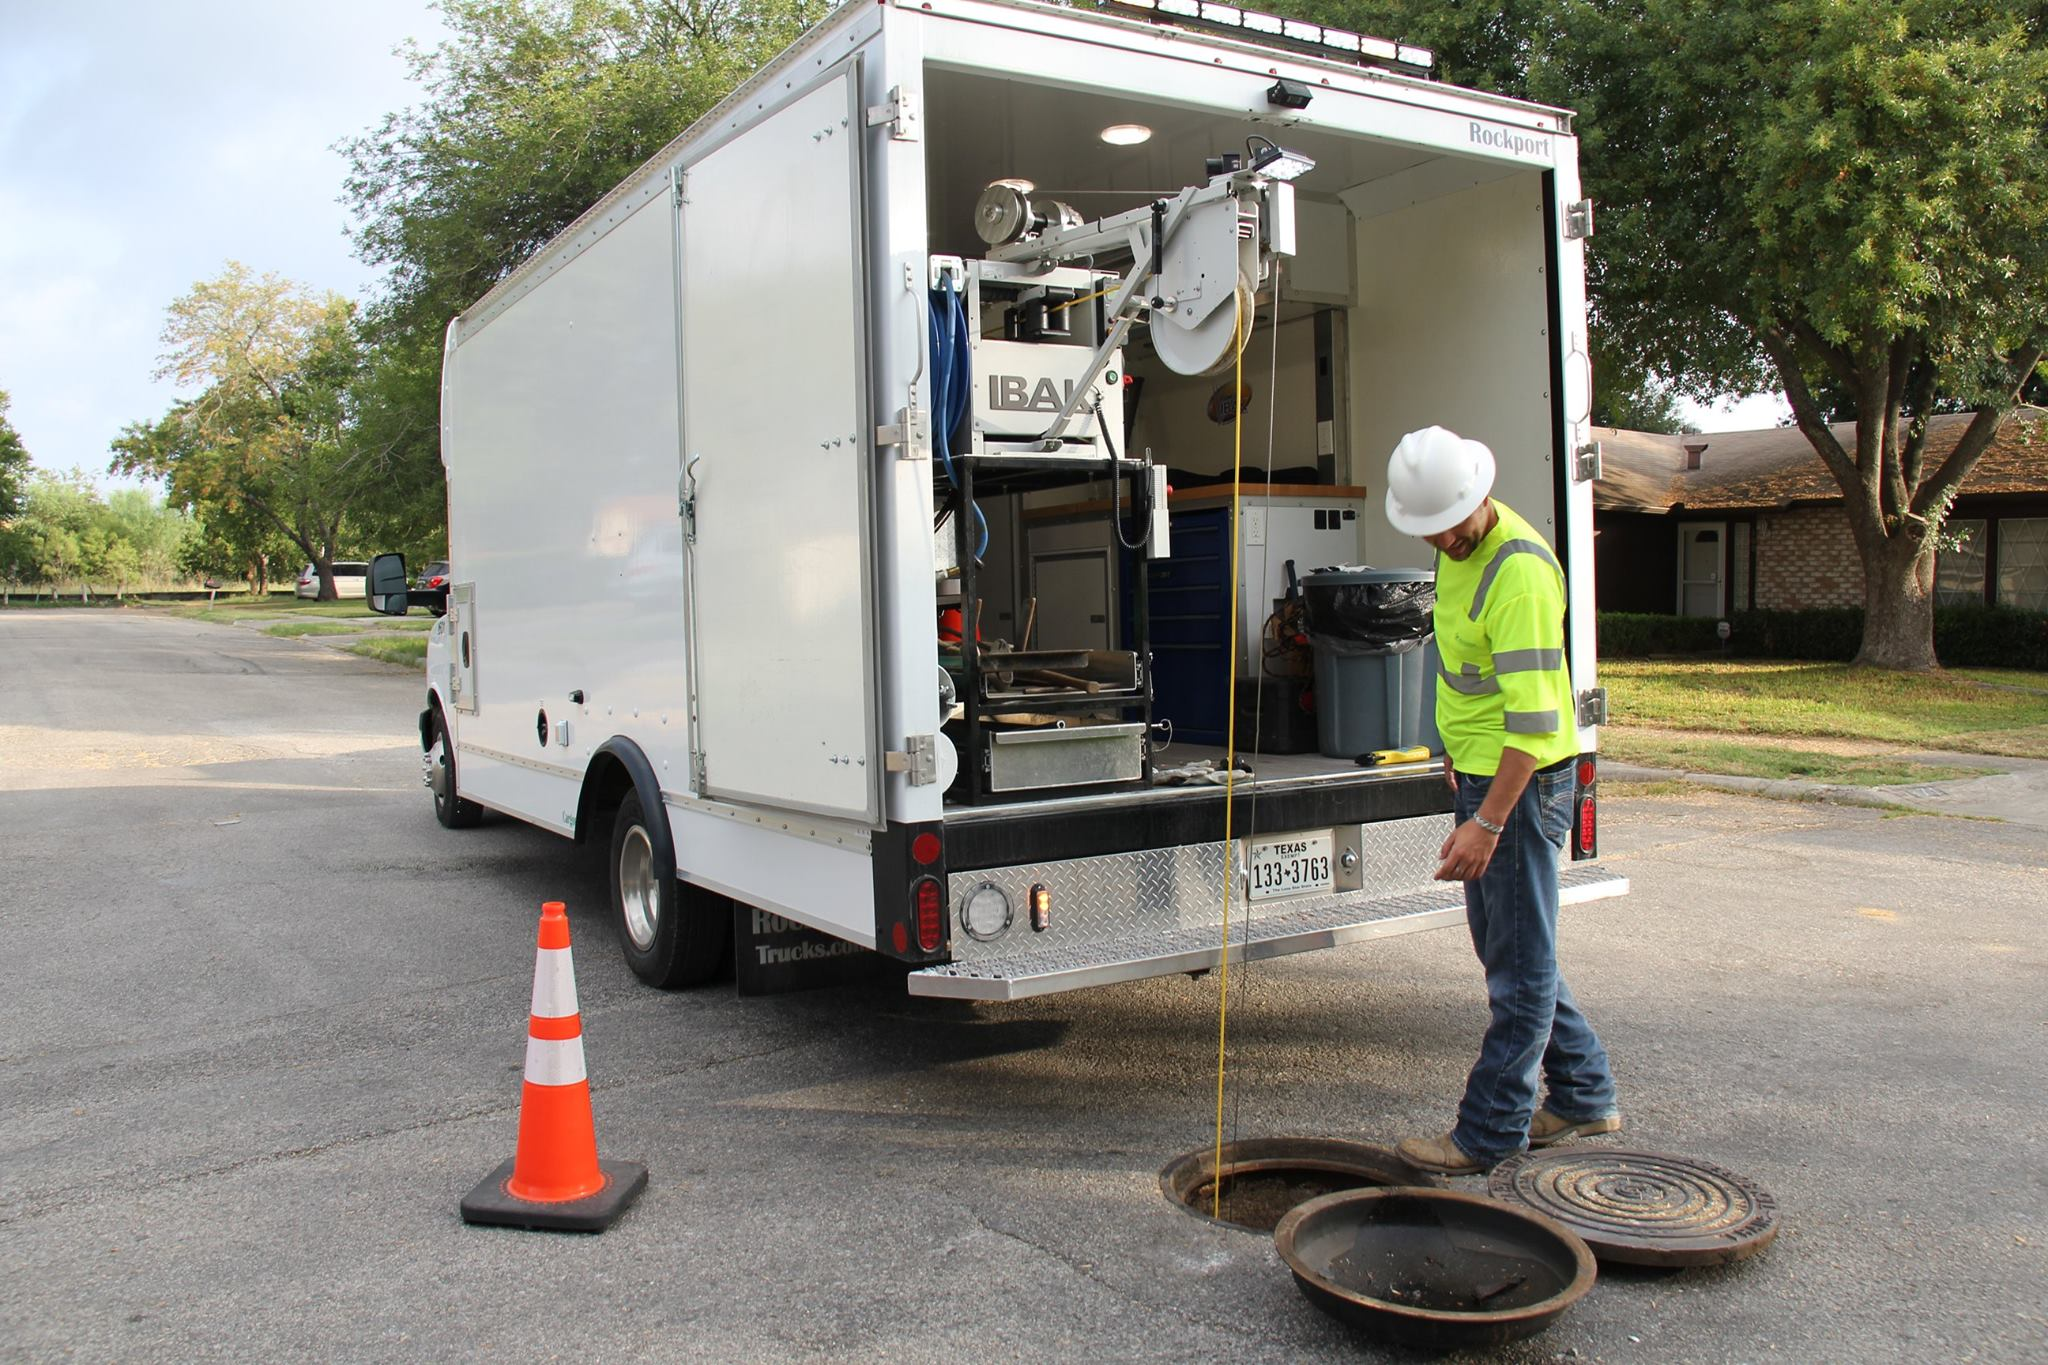 River Authority Utilities staff regularly performs preventative maintenance by cleaning the lines.